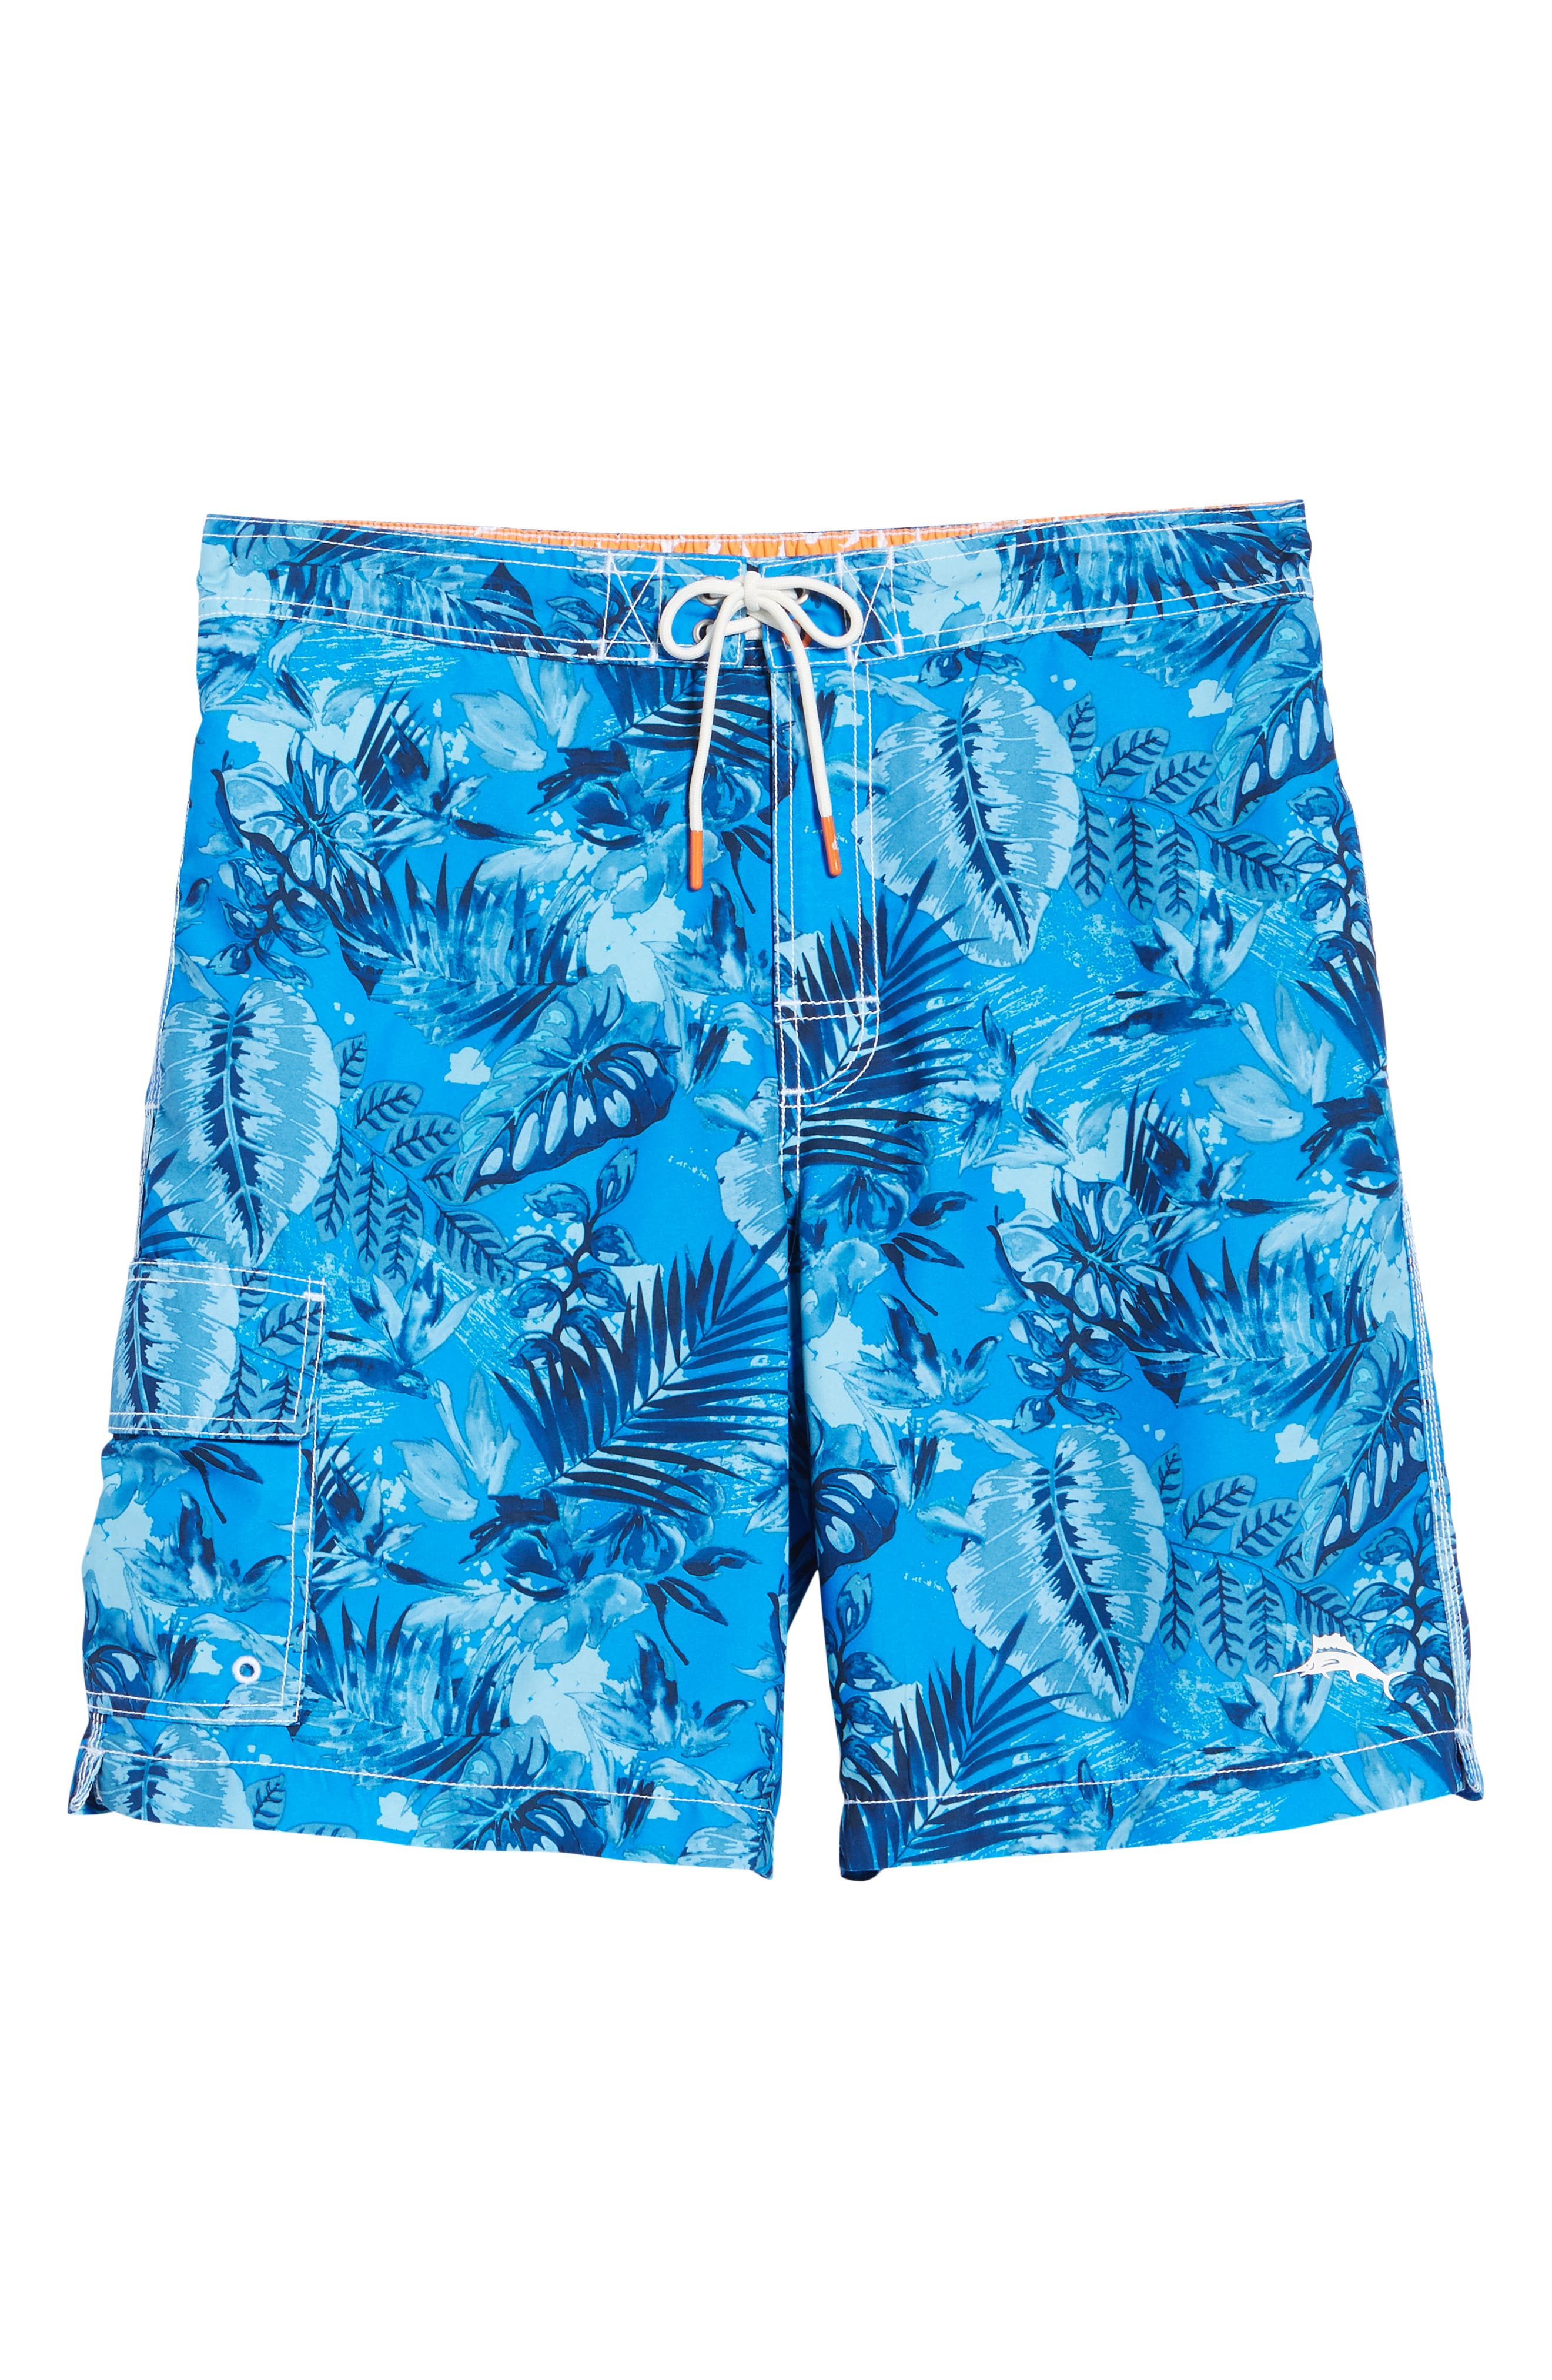 Baja Selva Shores Board Shorts,                             Alternate thumbnail 6, color,                             Blue Spark